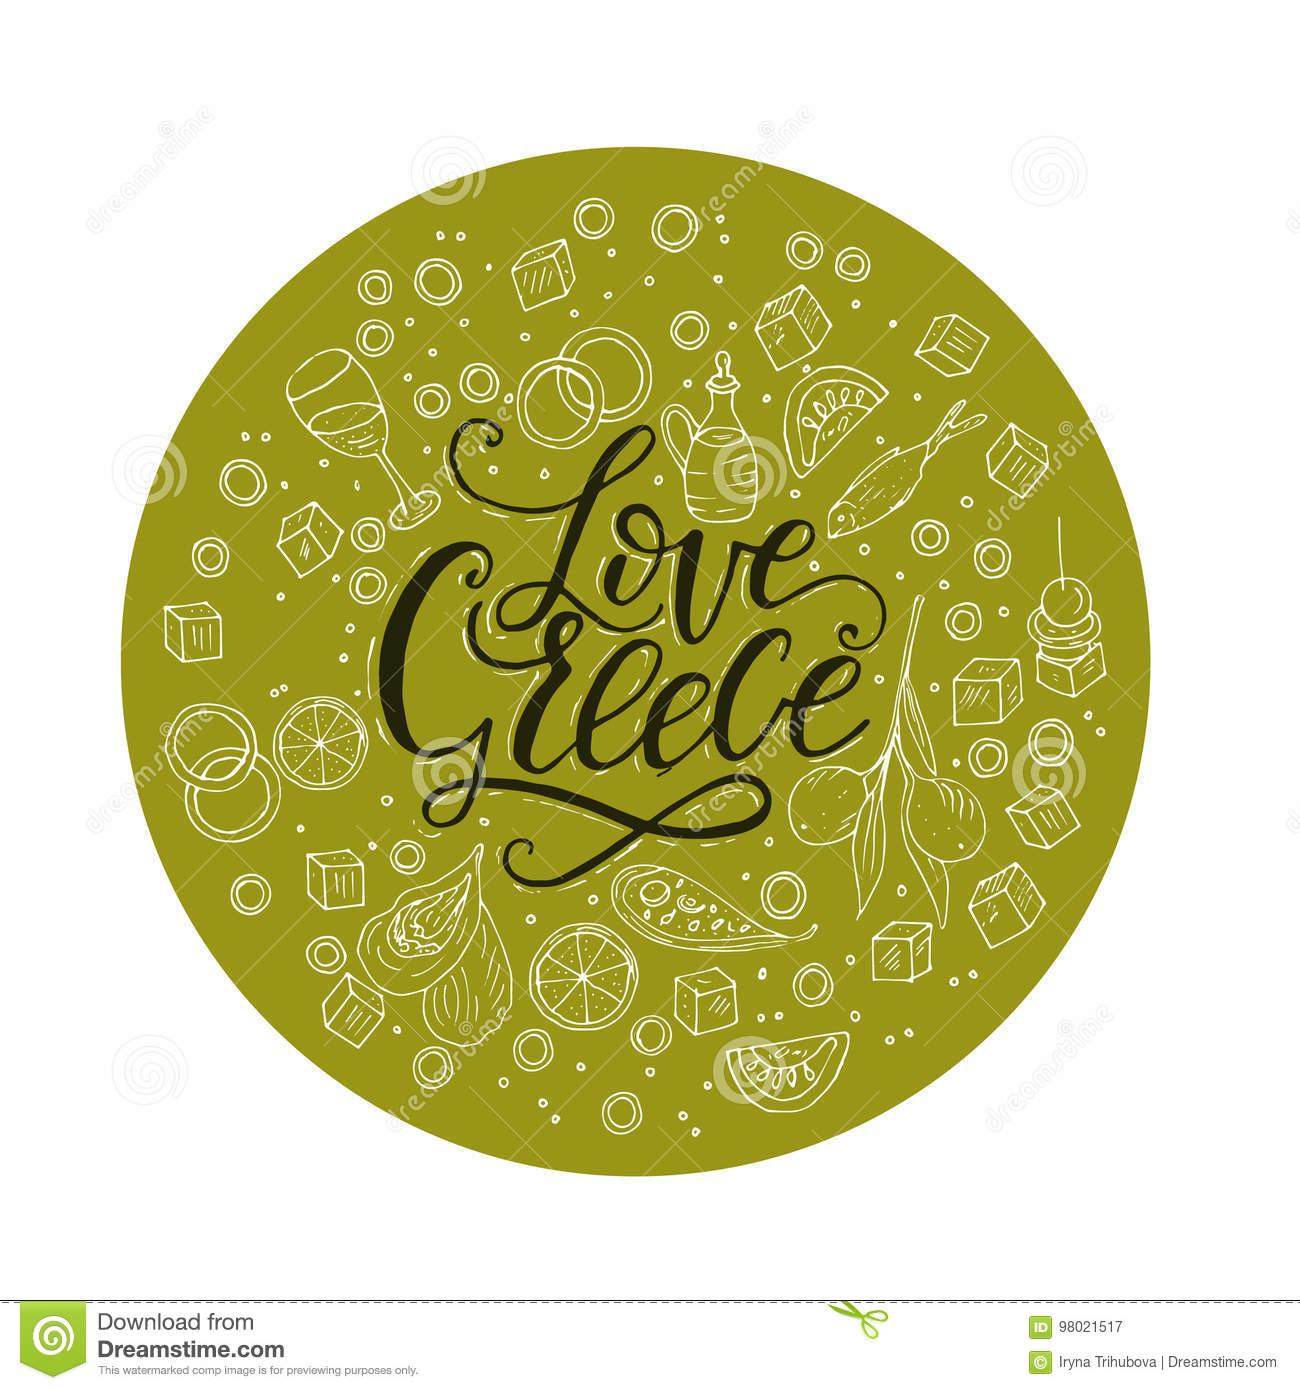 Love greece lettering handdrawn quote with doodle food symbols love greece lettering handdrawn quote with doodle food symbols biocorpaavc Image collections